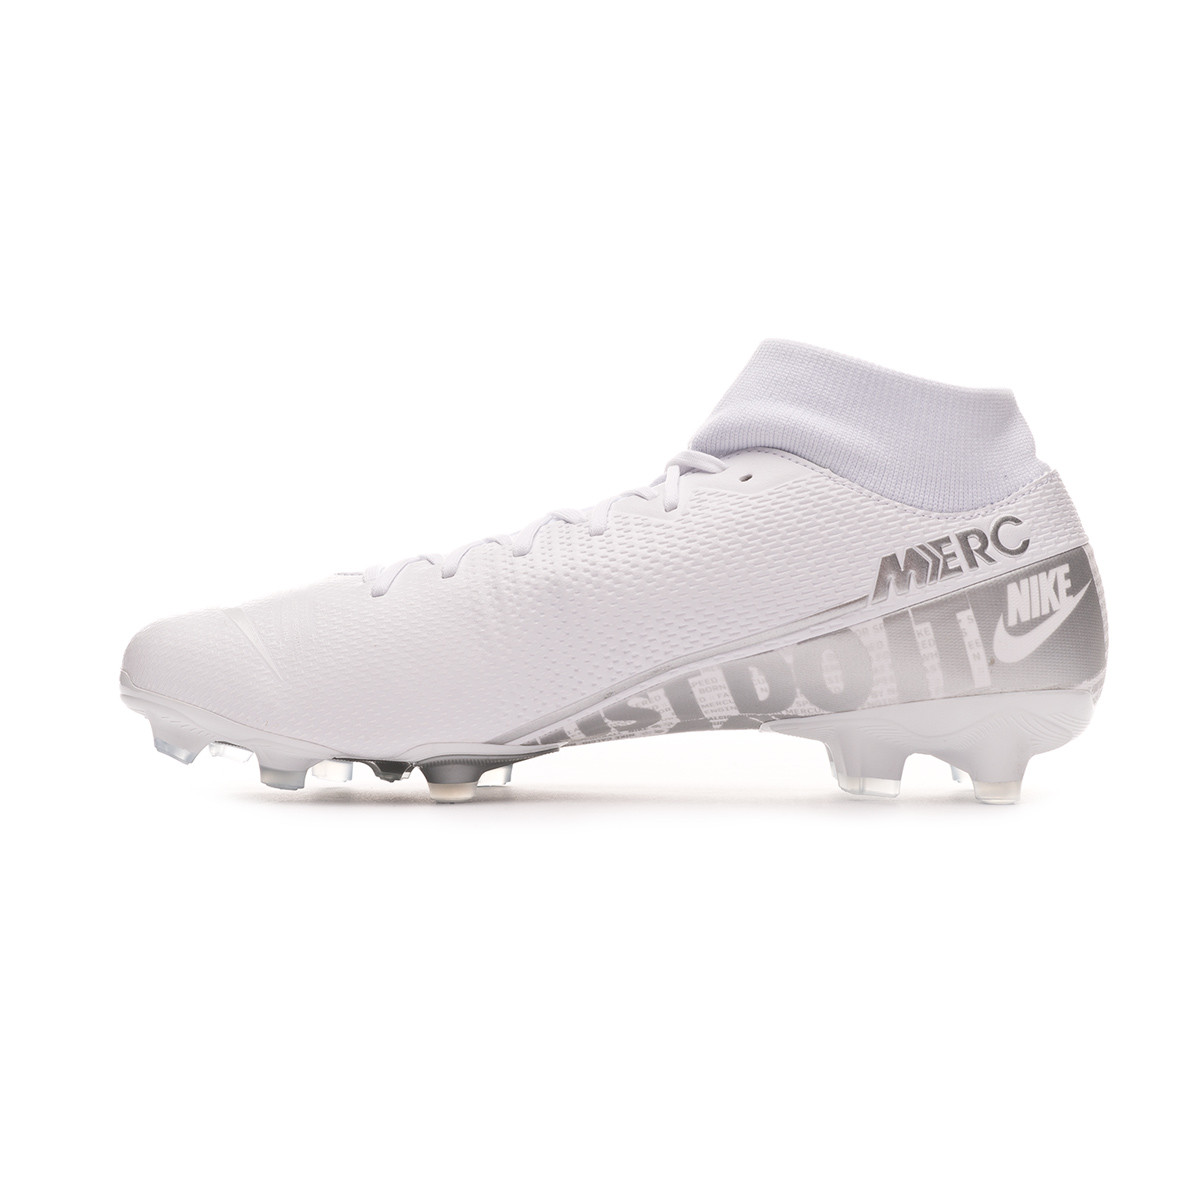 2018 sneakers best shoes store Nike Mercurial Superfly VII Academy FG/MG Football Boots